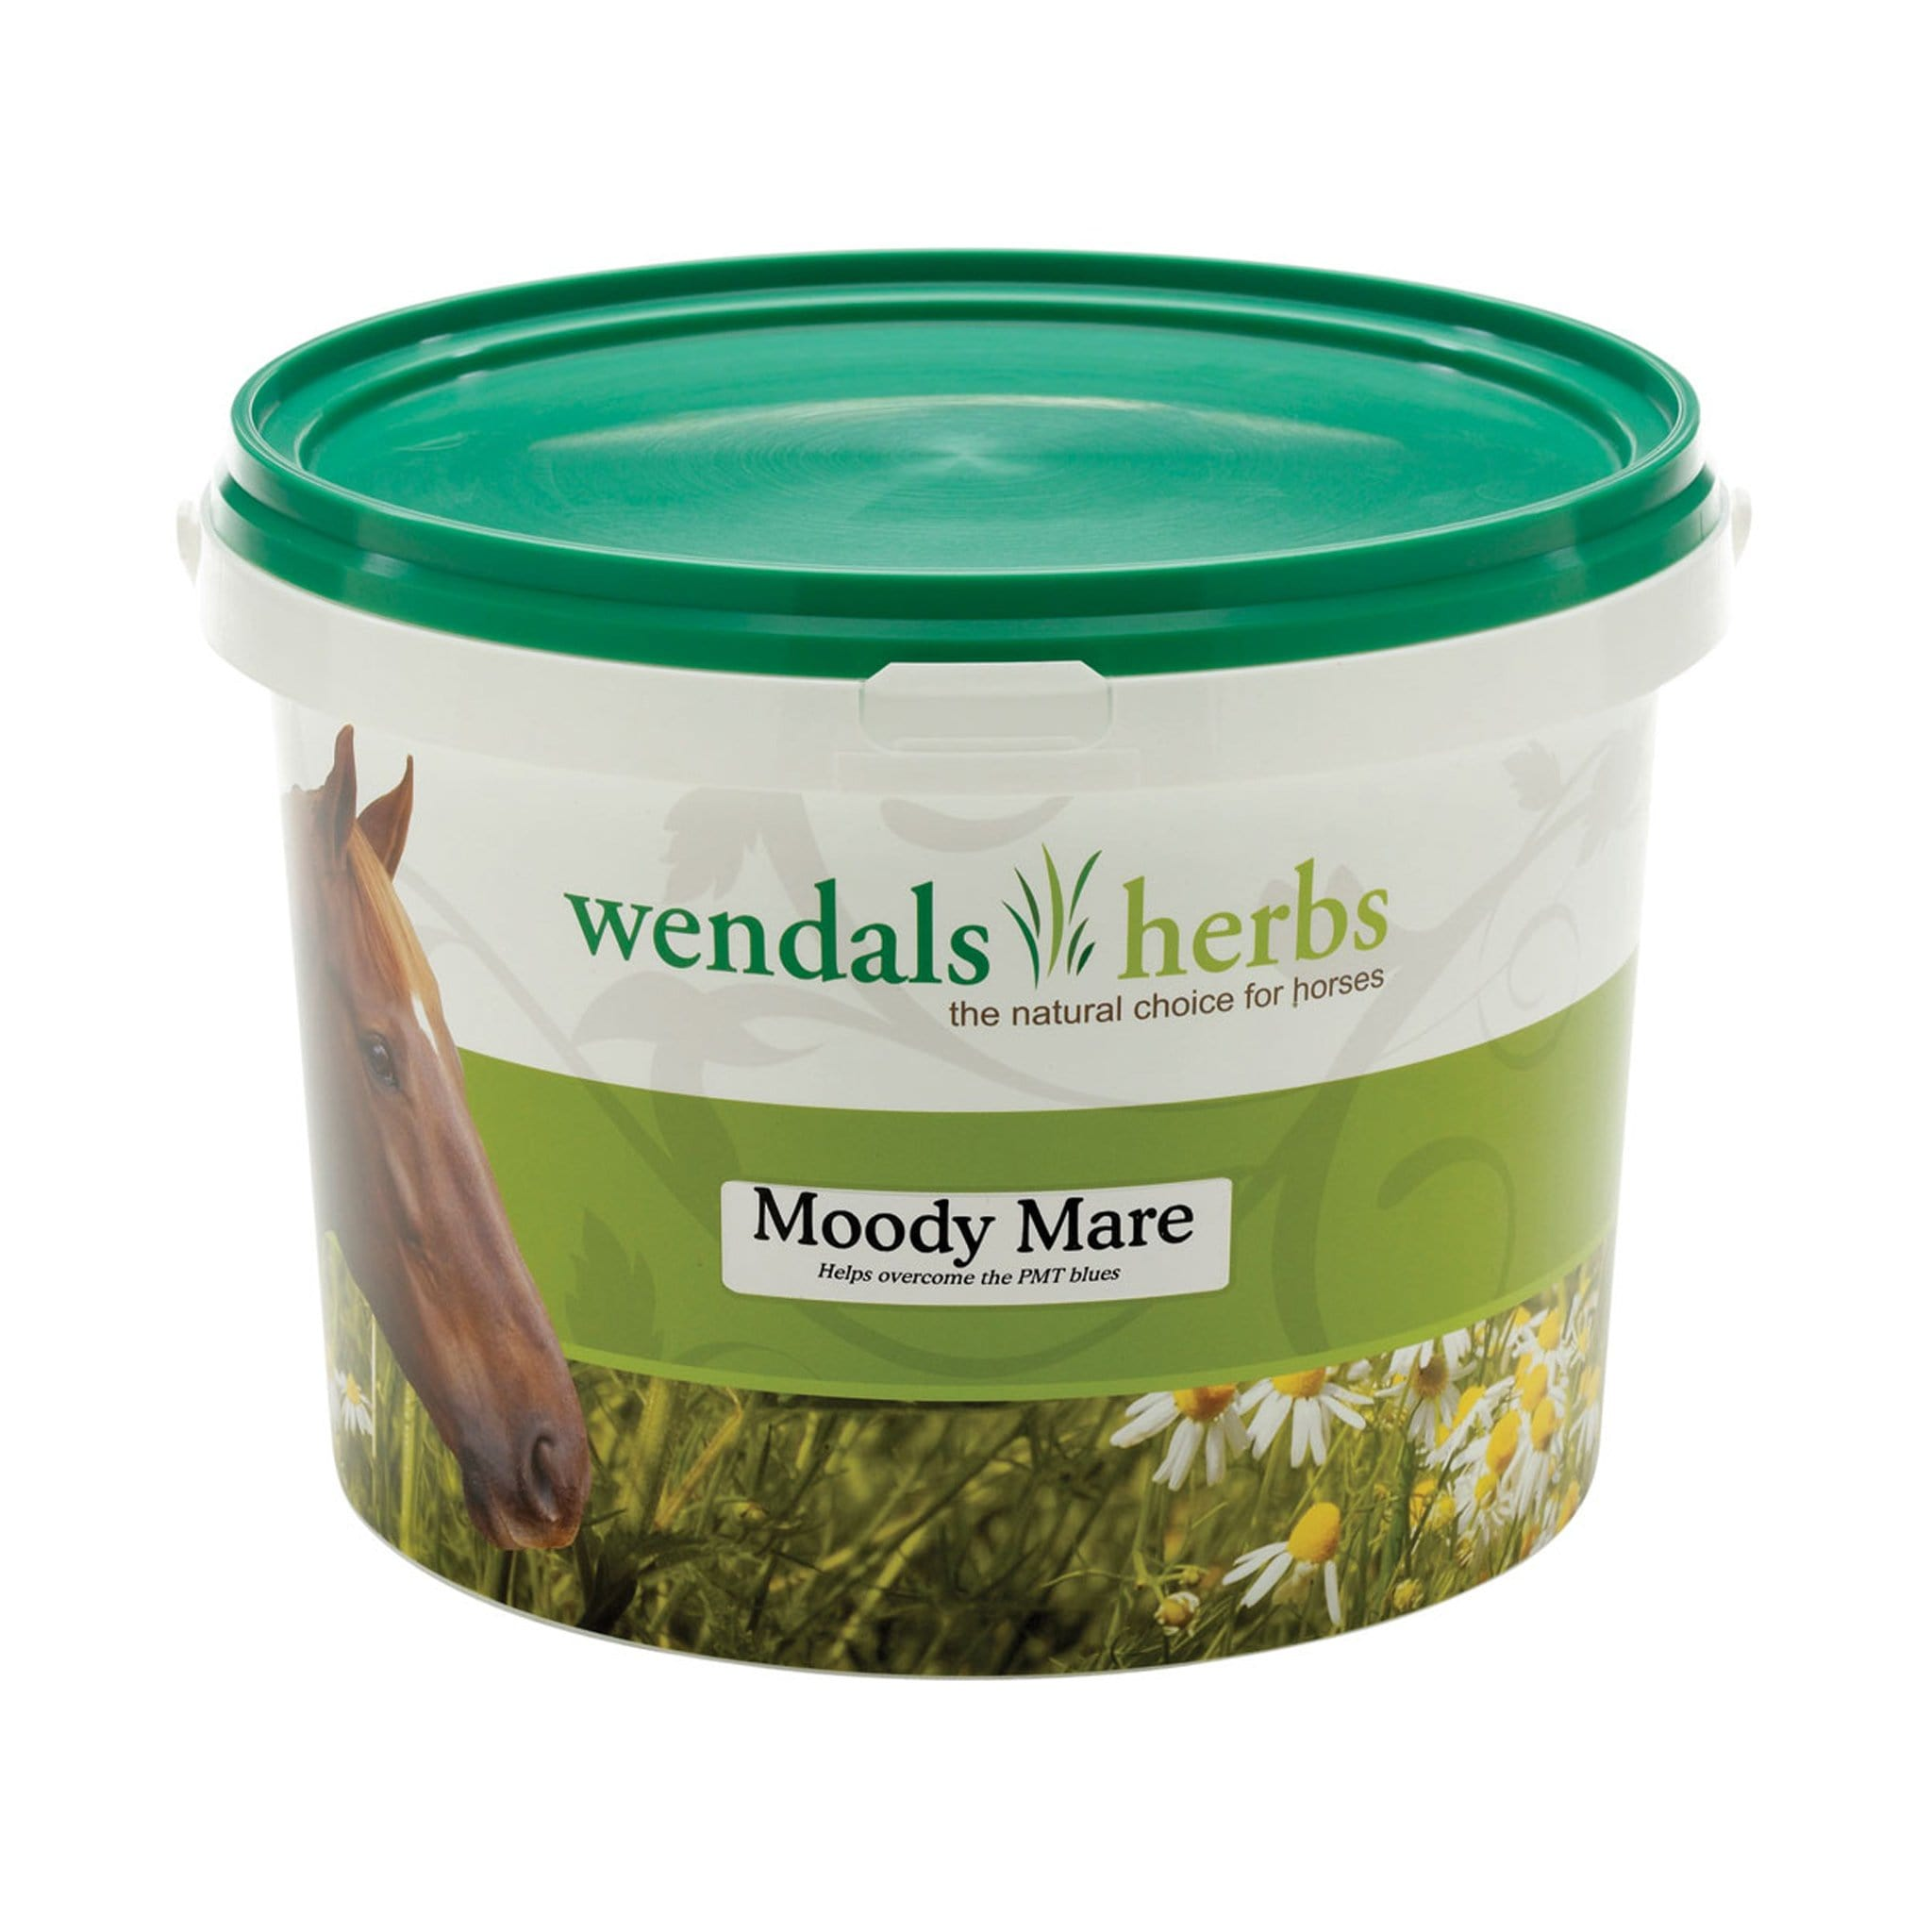 Wendals Herbs Moody Mare